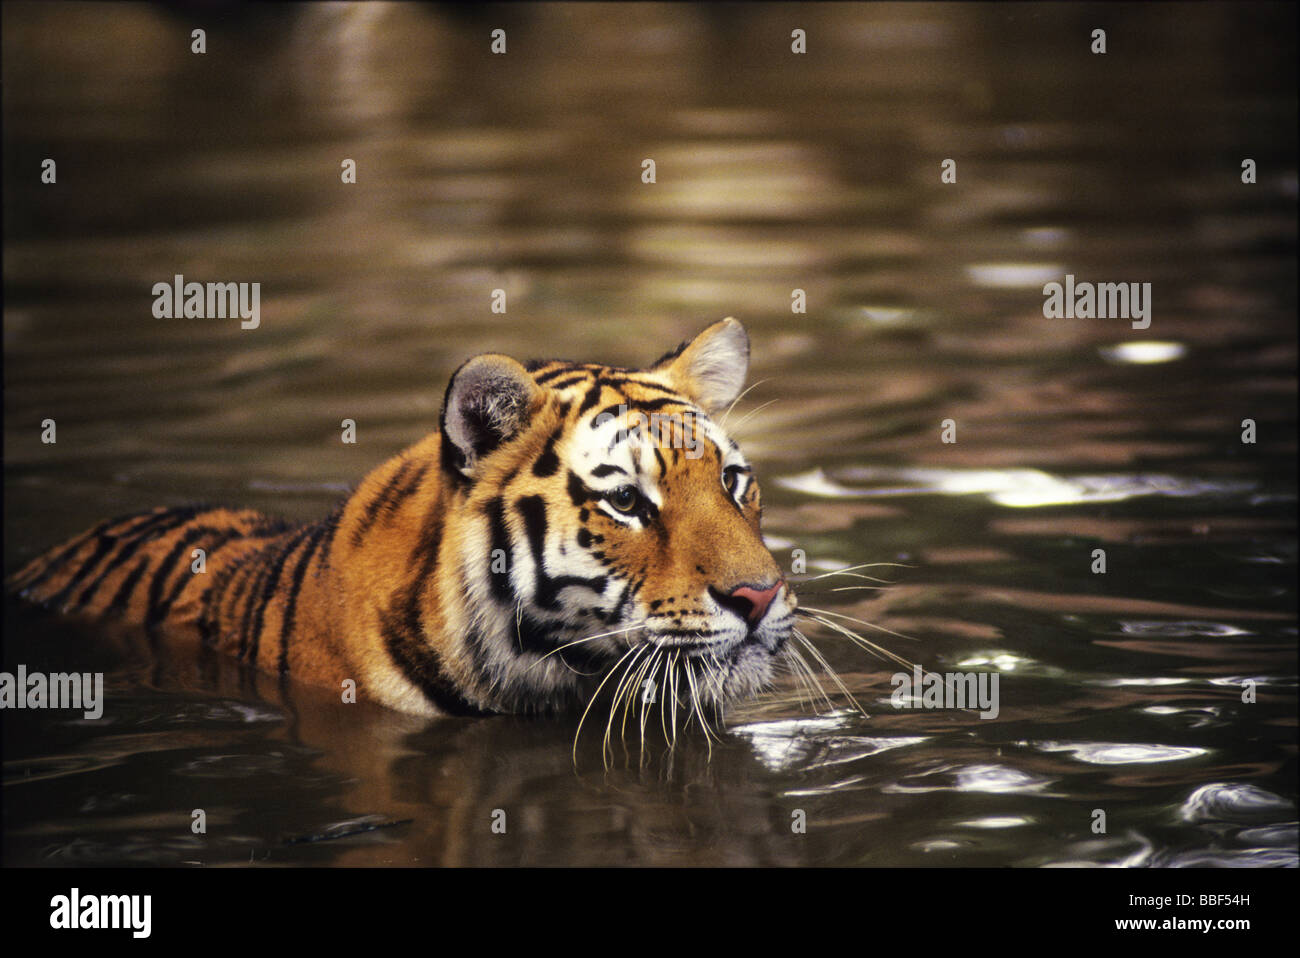 Tiger in the water, they are arguably the biggest member of the cat family. - Stock Image